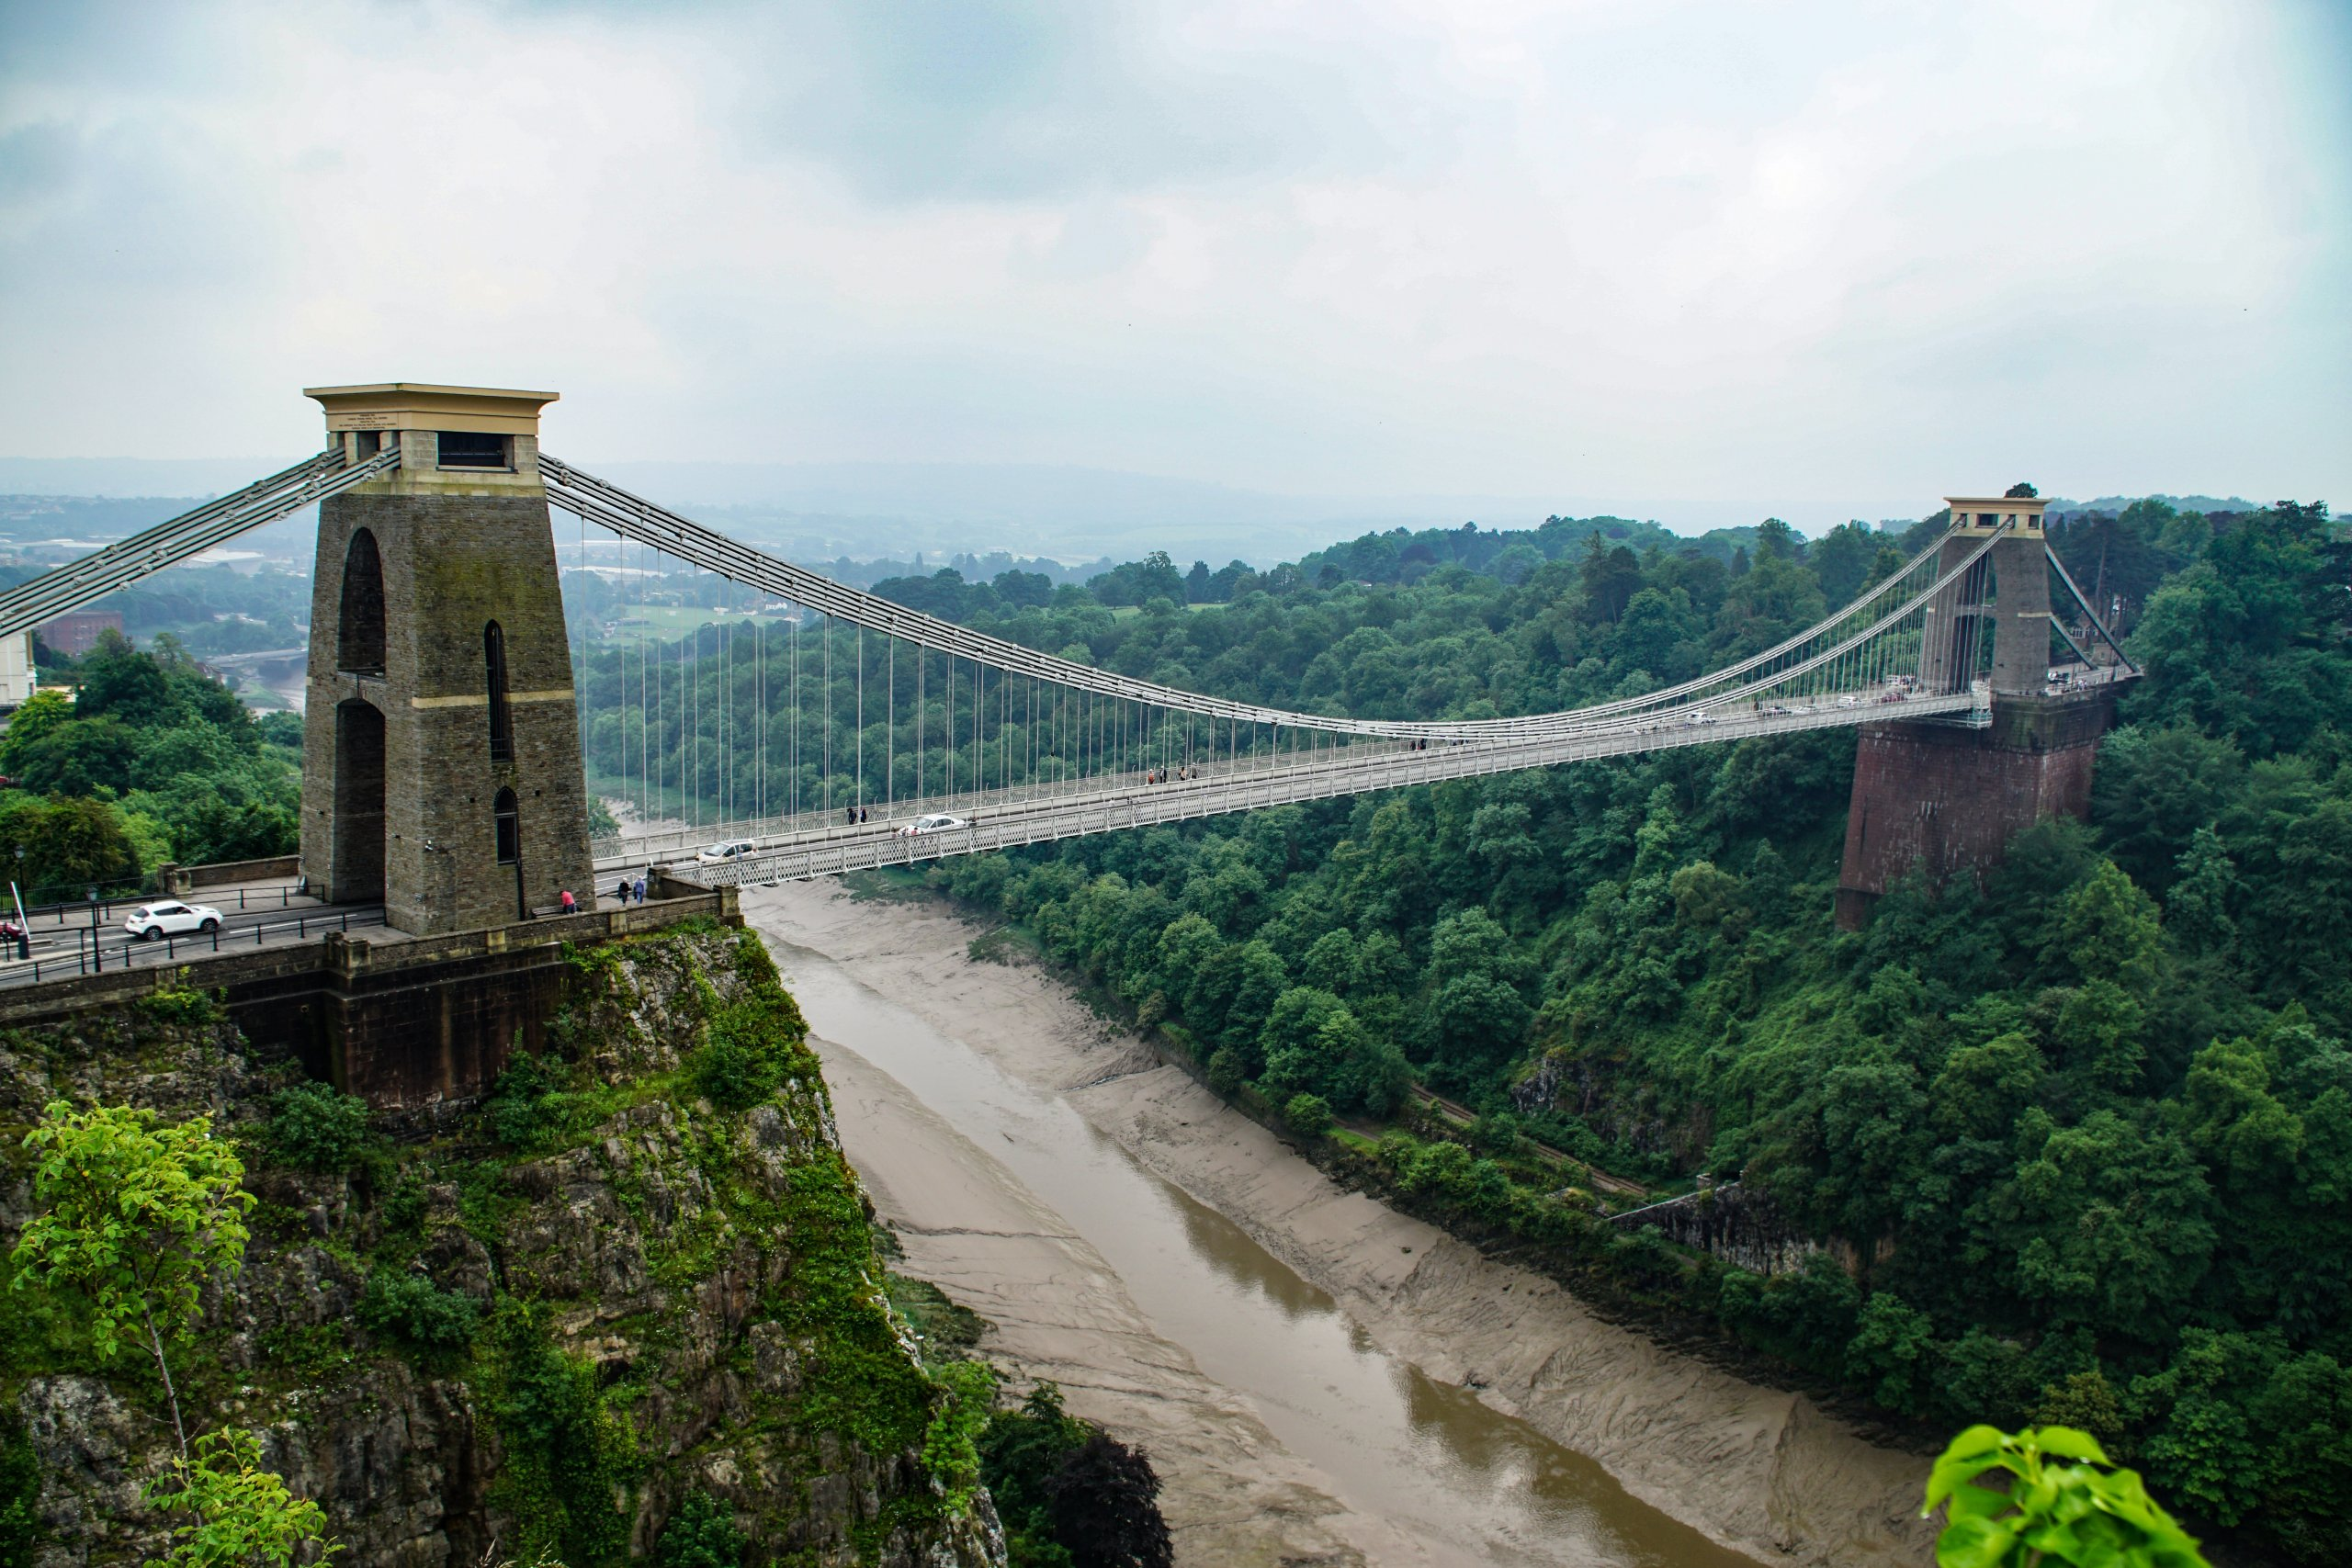 large suspension bridge crossing river and forests near Bristol, UK